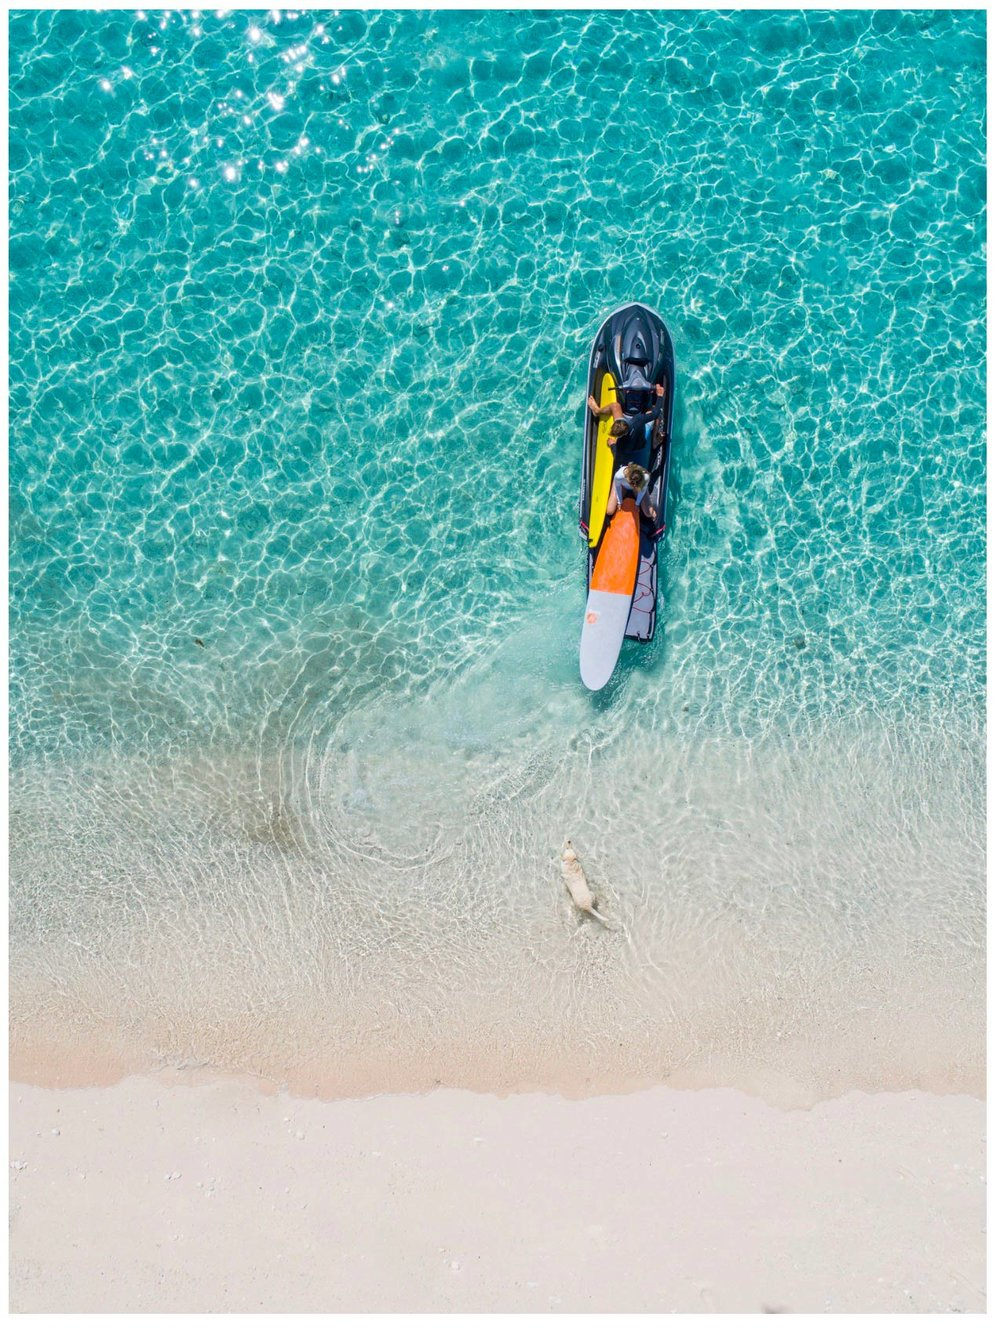 rodd-owen-ocean-surf-photography-for-sale-drone-081.jpg